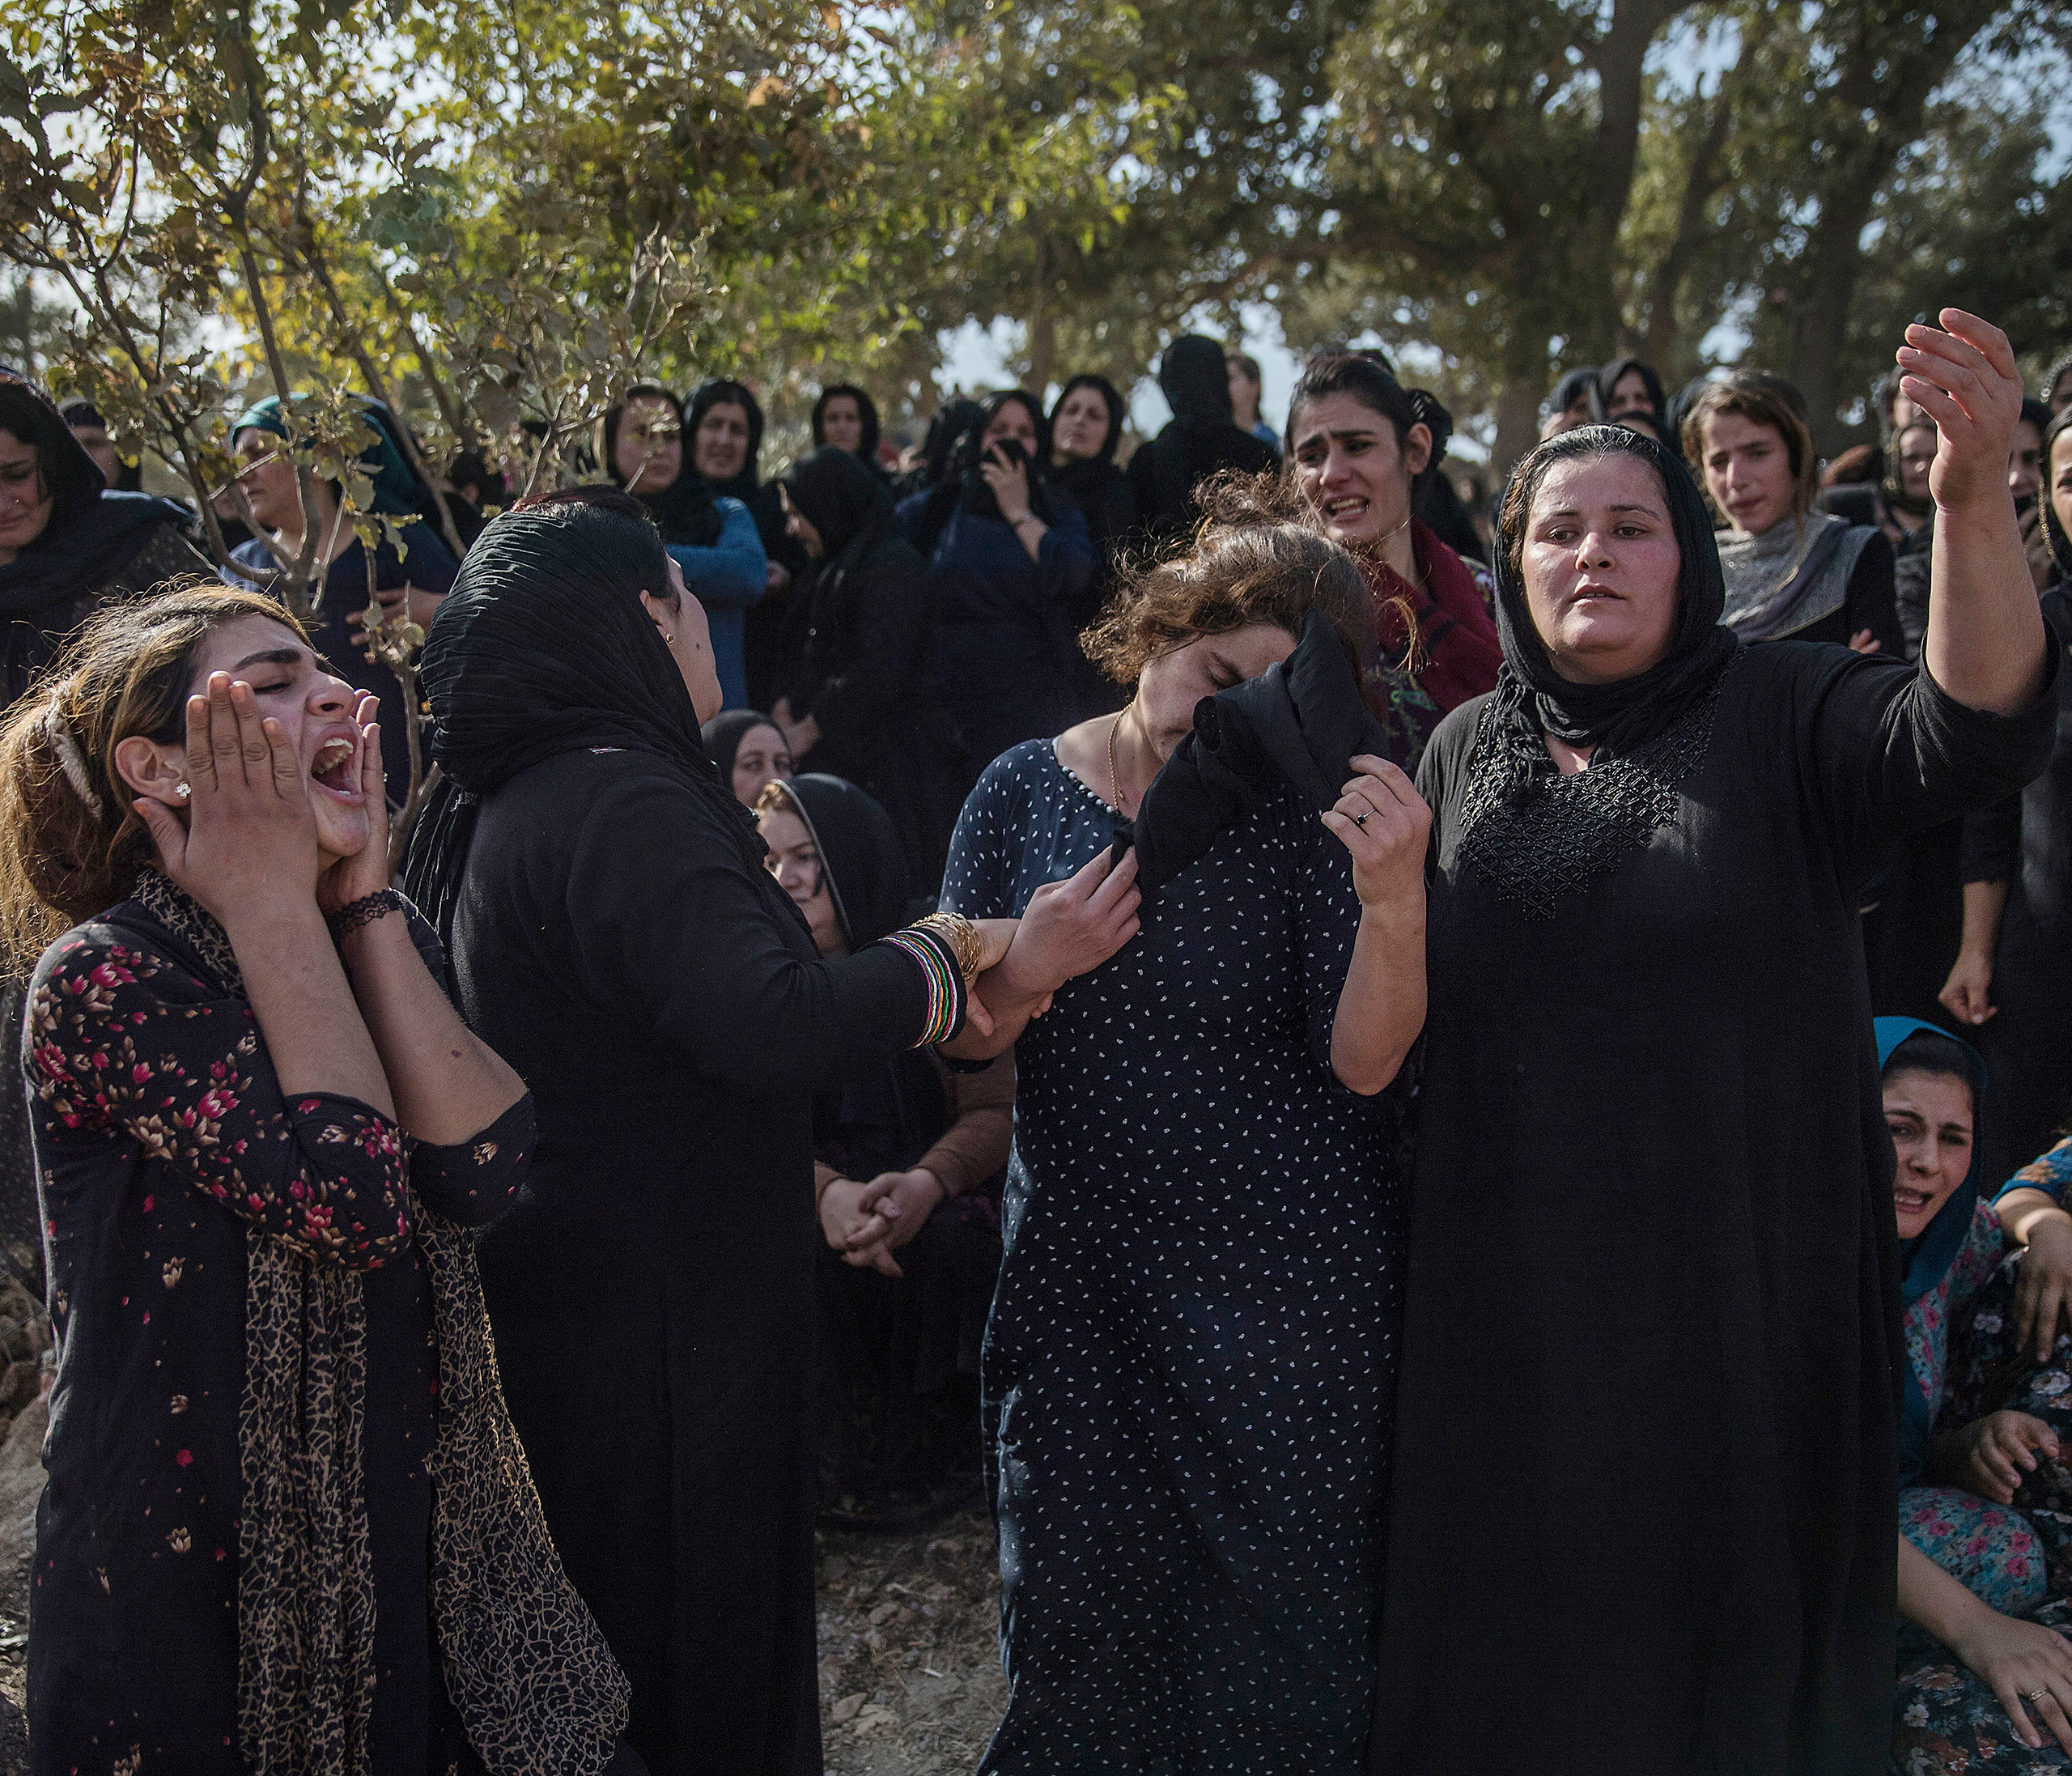 Thousands of people gather at the funeral of five Peshmerga soldiers killed by an IED explosion in their village of Khalifa, Iraq. The village has lost nearly 300 soldiers in the war against ISIS, Oct. 2016.